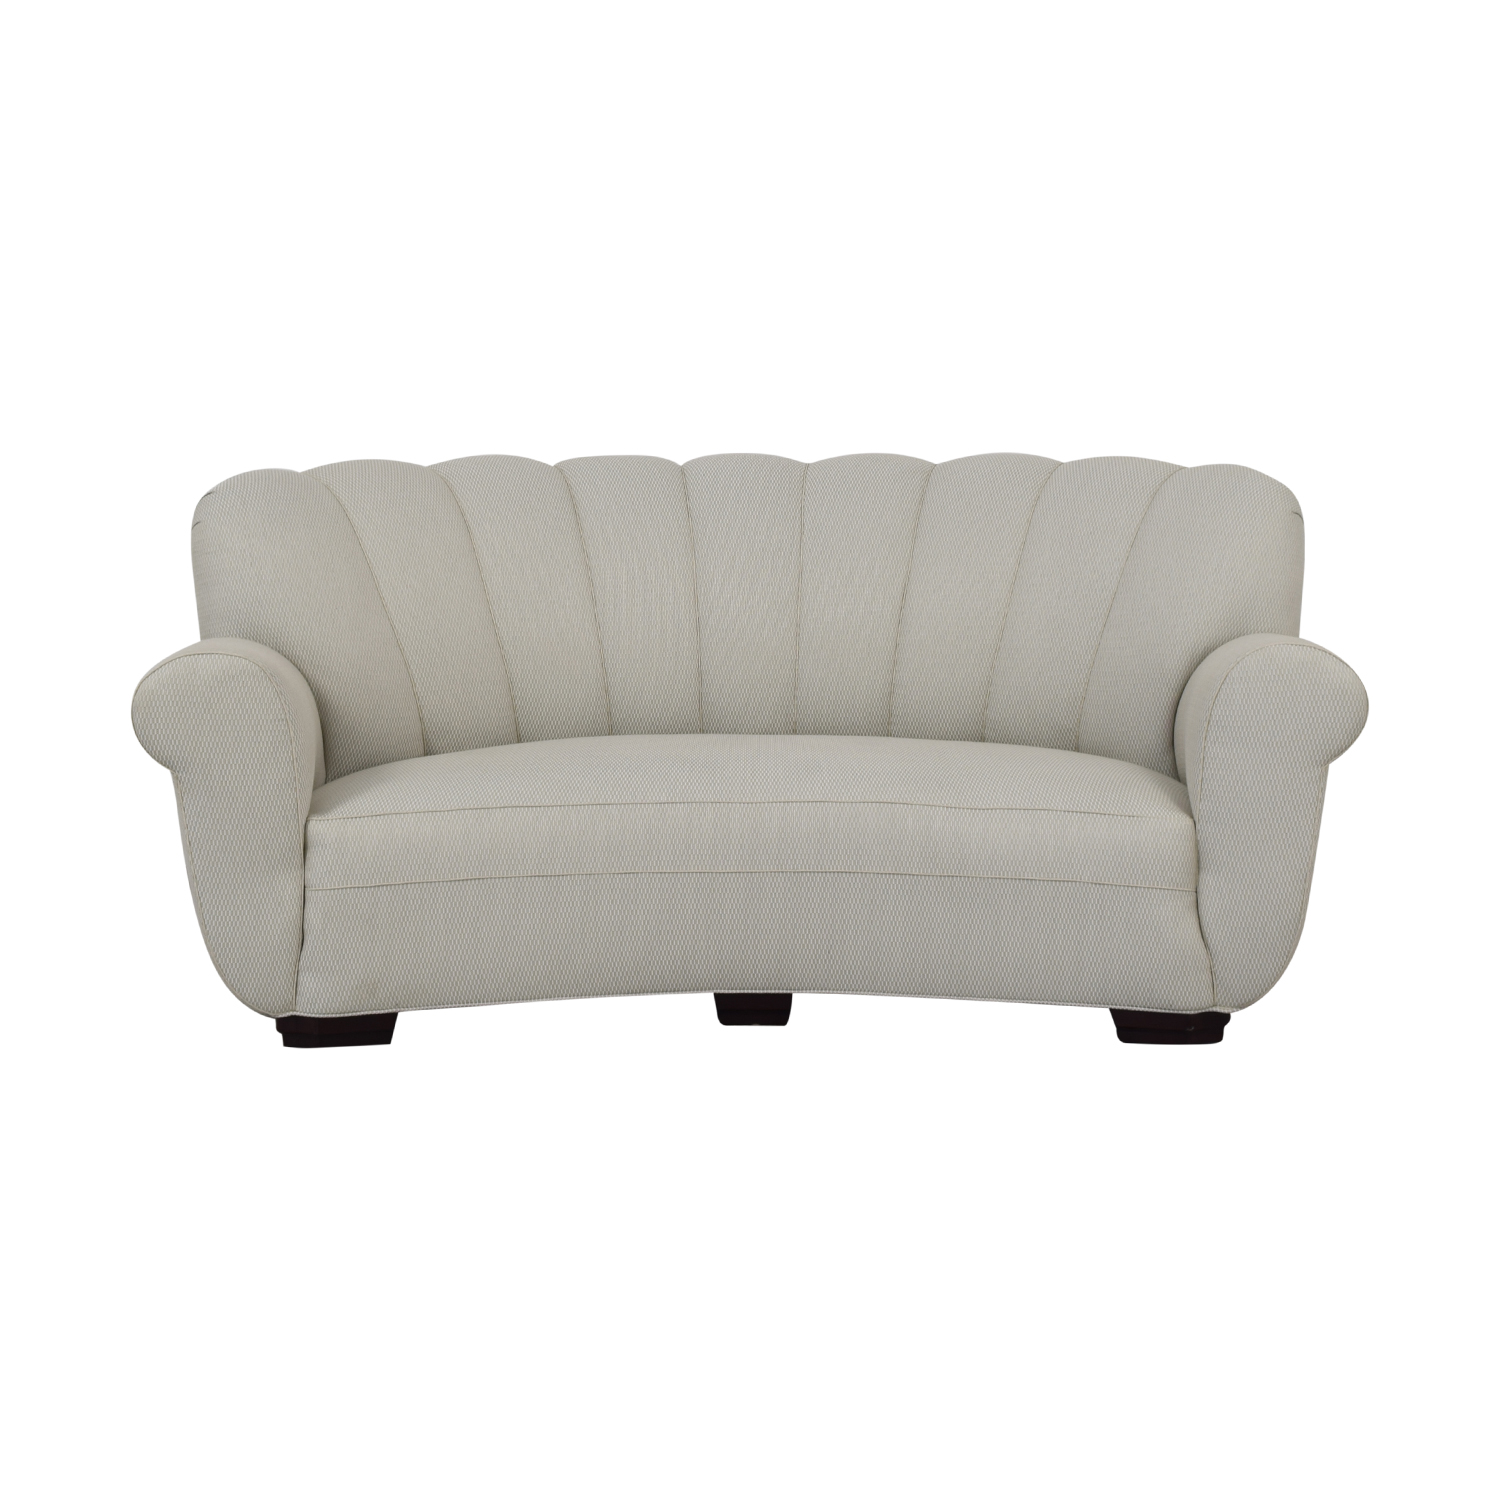 Lorin Marsh Lorin Marsh Channing Sofa discount